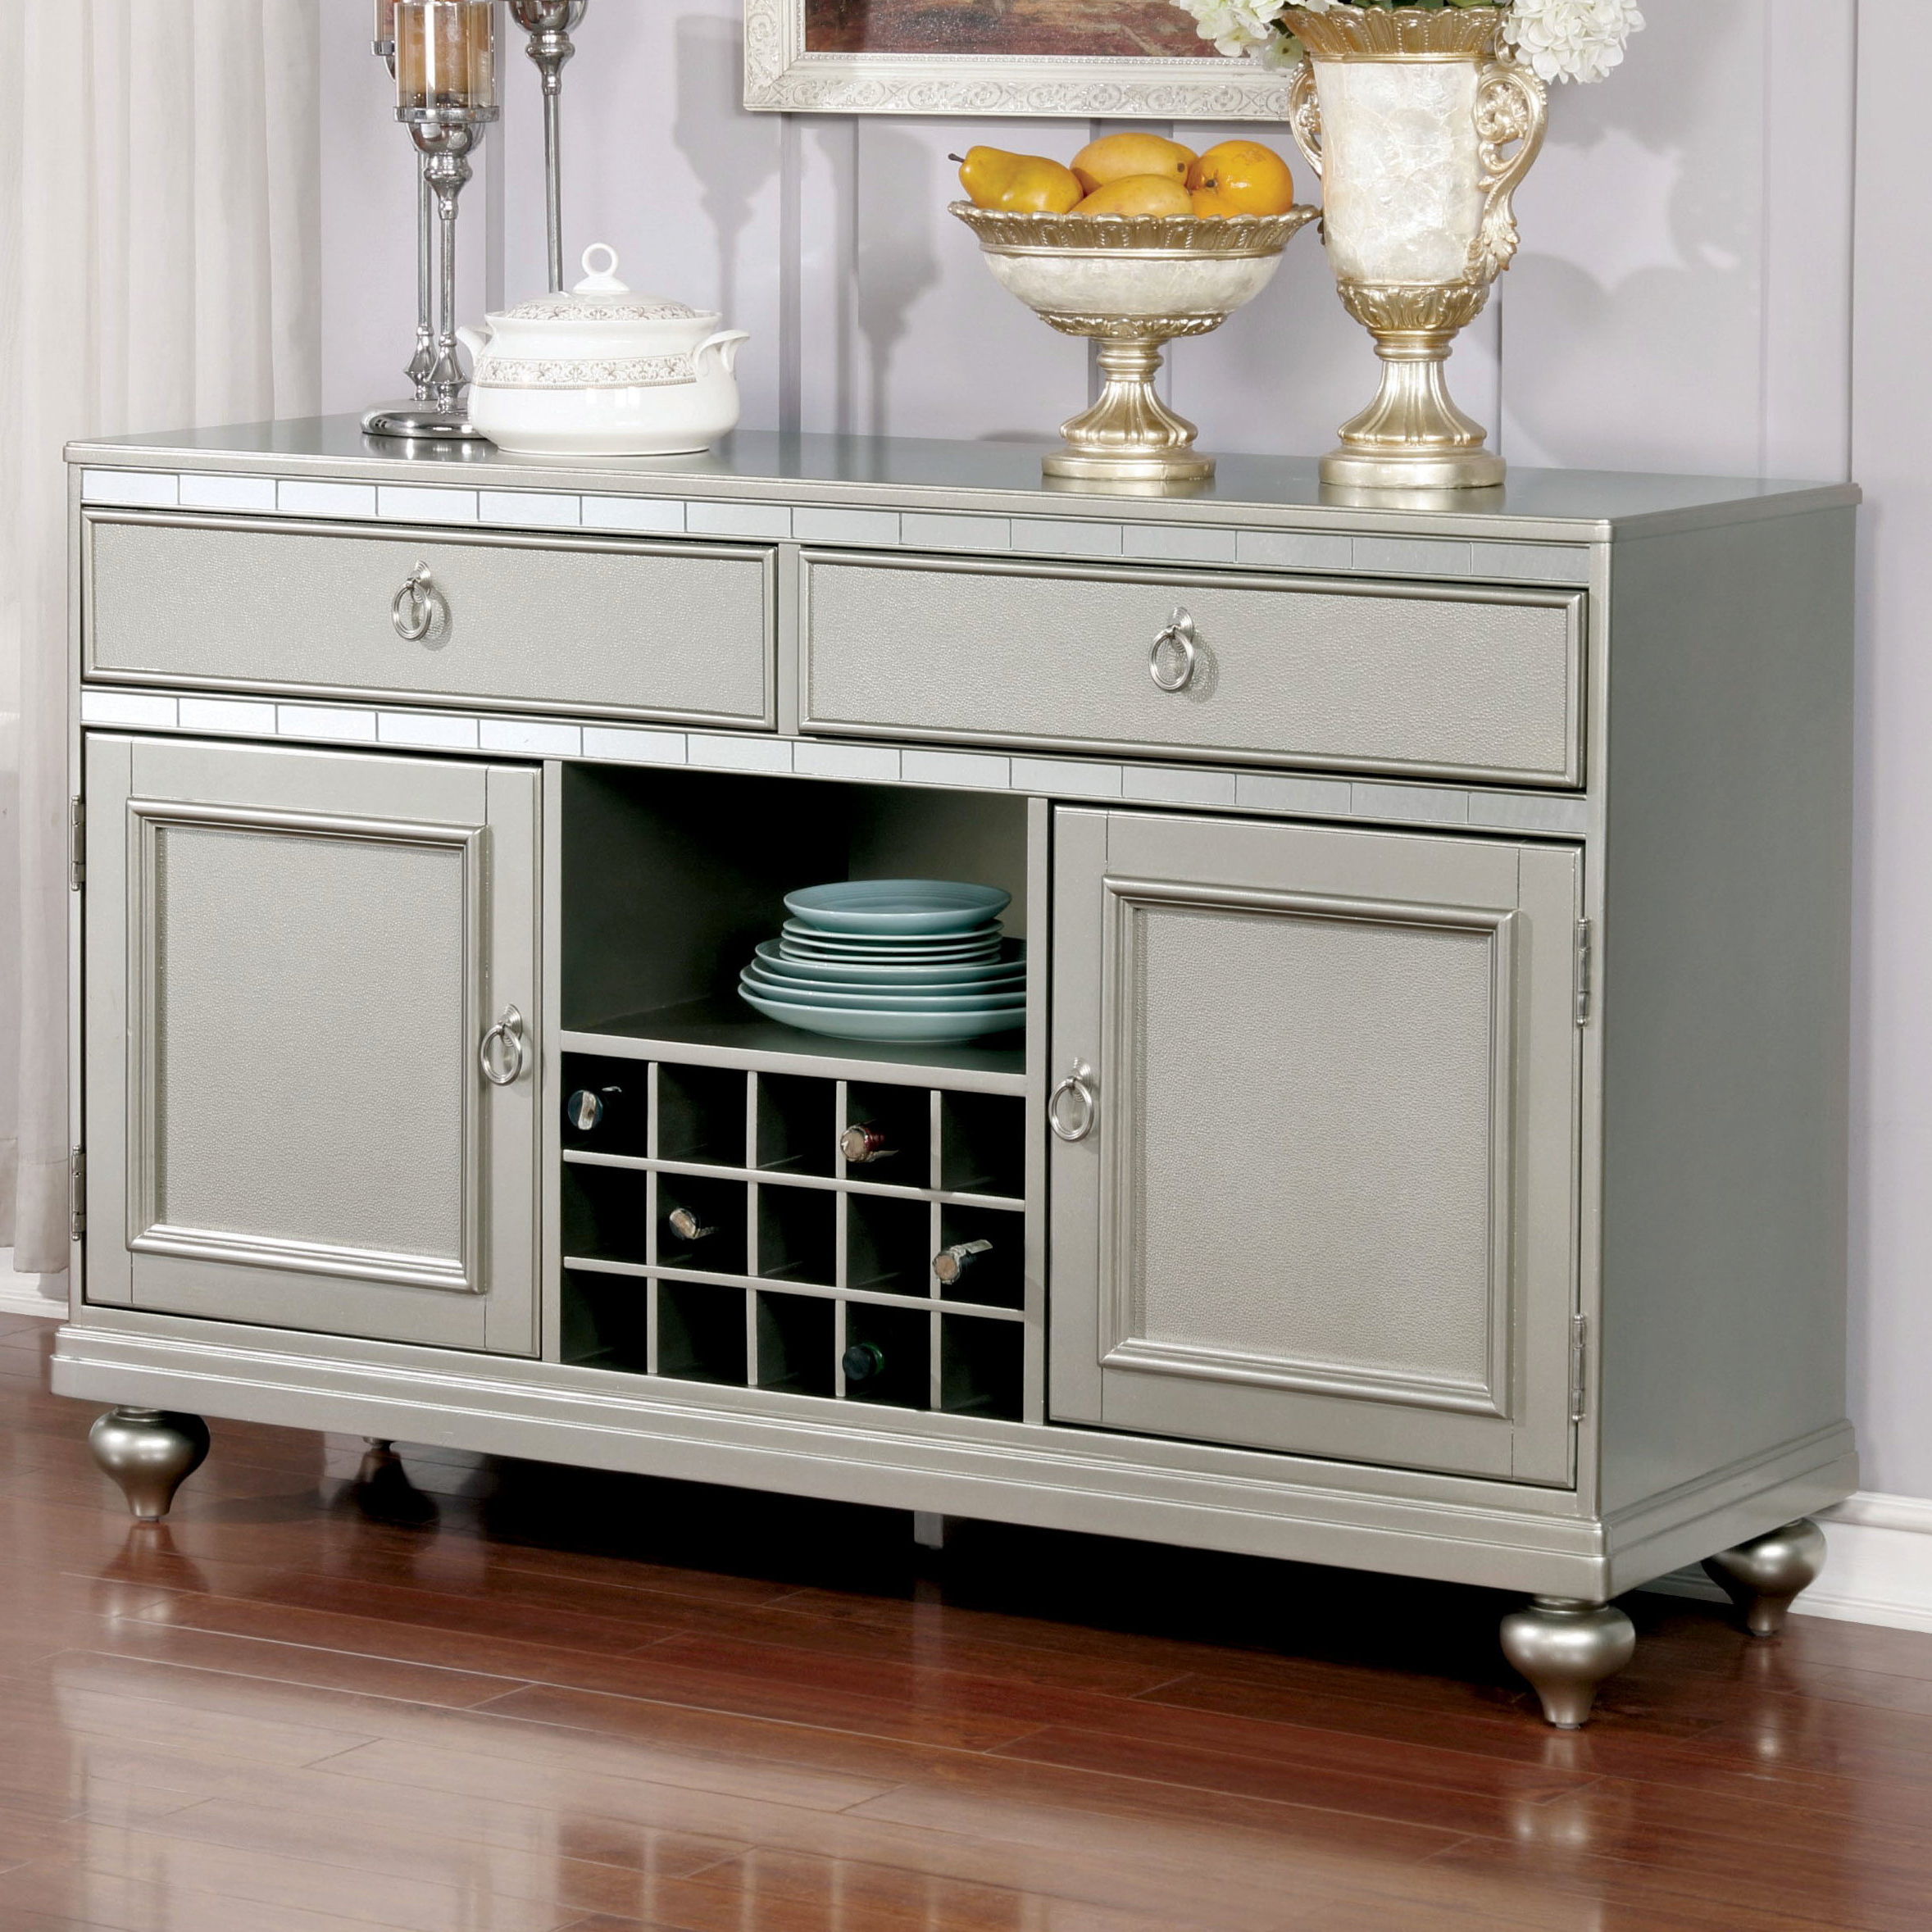 Grey Metal Sideboards & Buffets You'll Love In 2019 | Wayfair Pertaining To Casolino Sideboards (View 16 of 20)